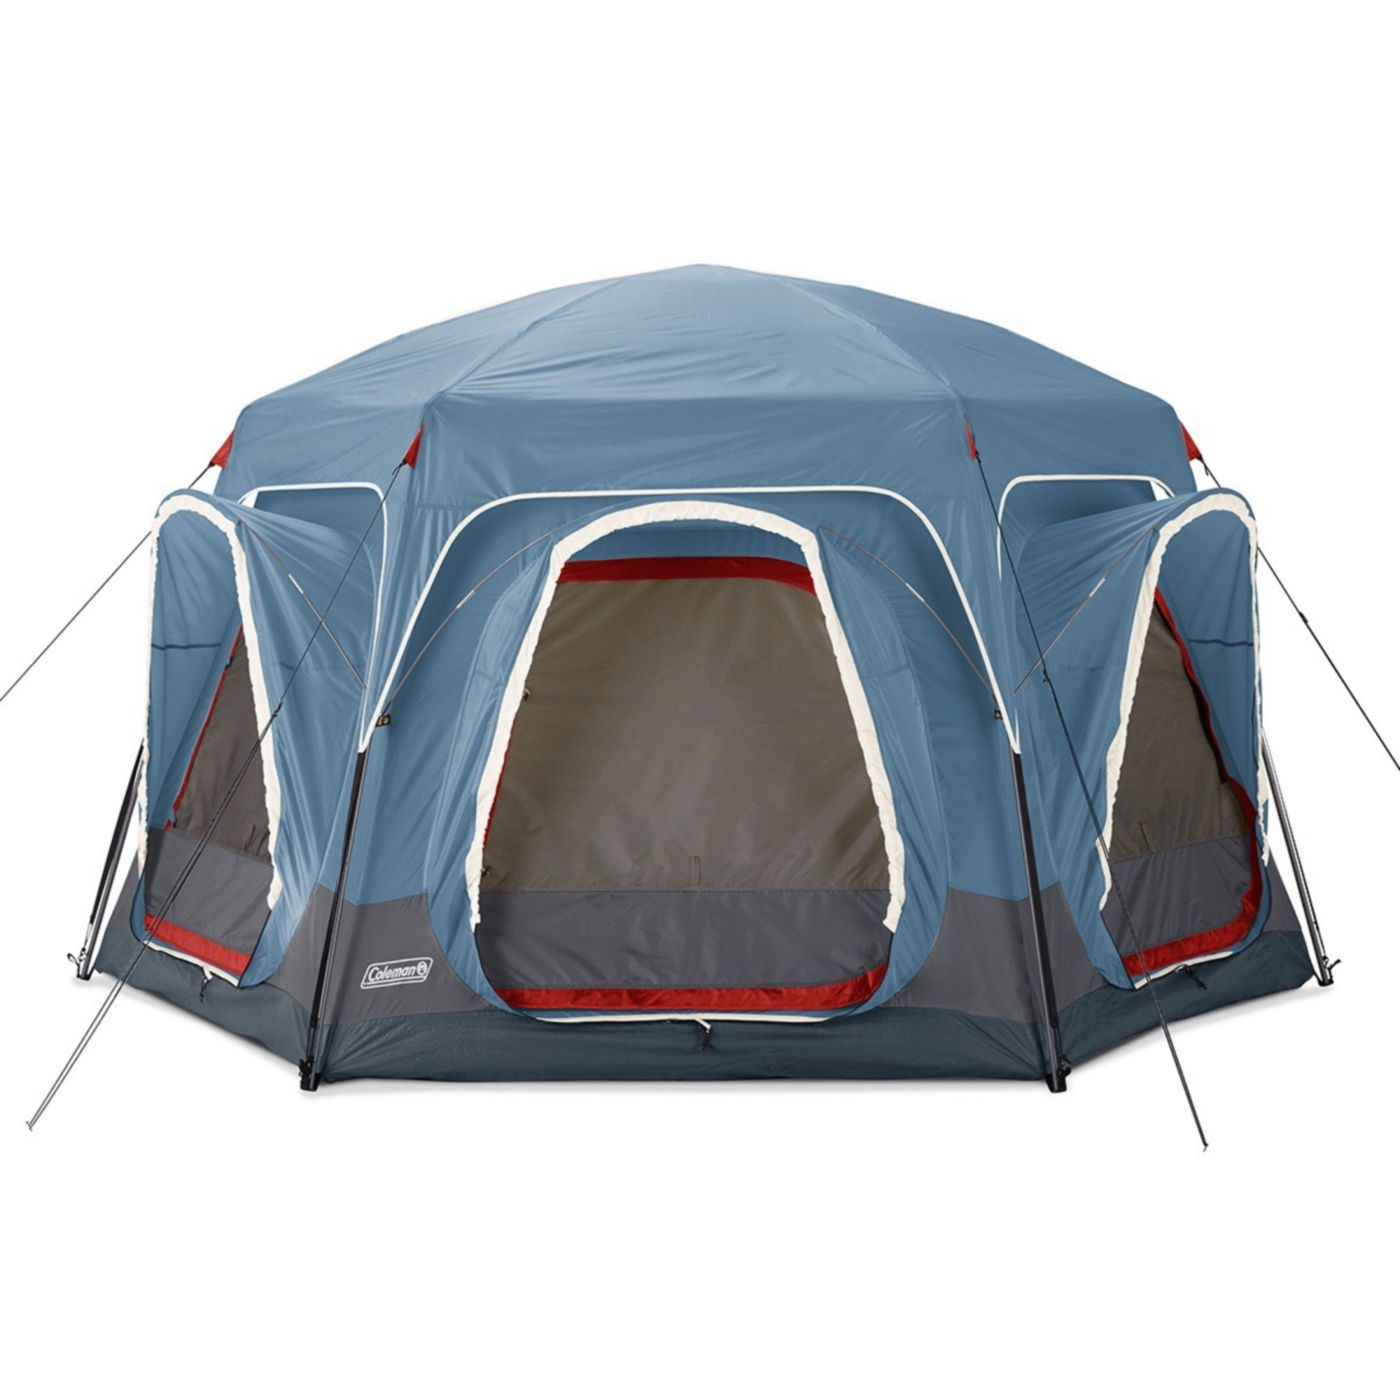 6-Person Connectable Tent with Fast Pitch Setup Blue  sc 1 st  Coleman & Coleman Tents u0026 Shelters | Coleman